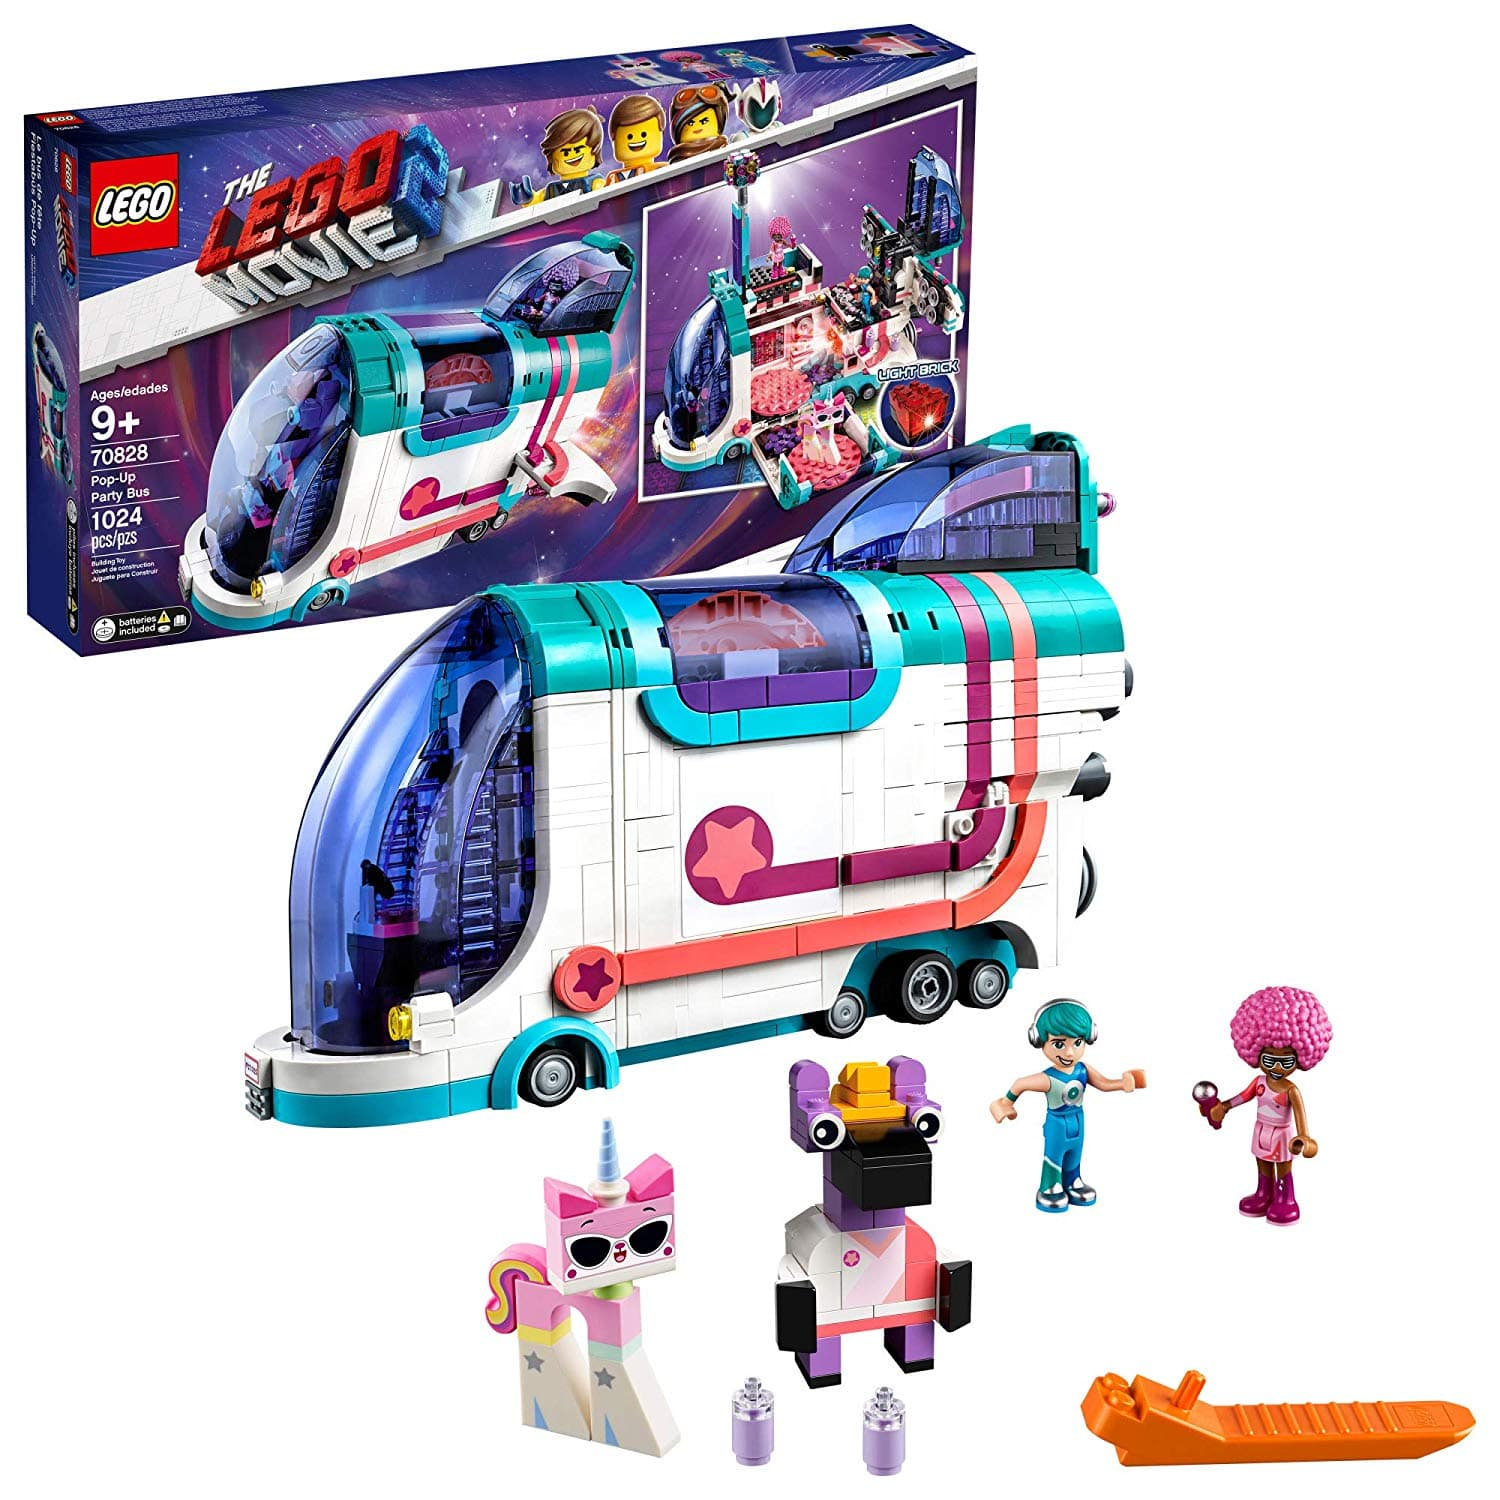 LEGO Movie Pop-Up Party Bus 70828 $34.99